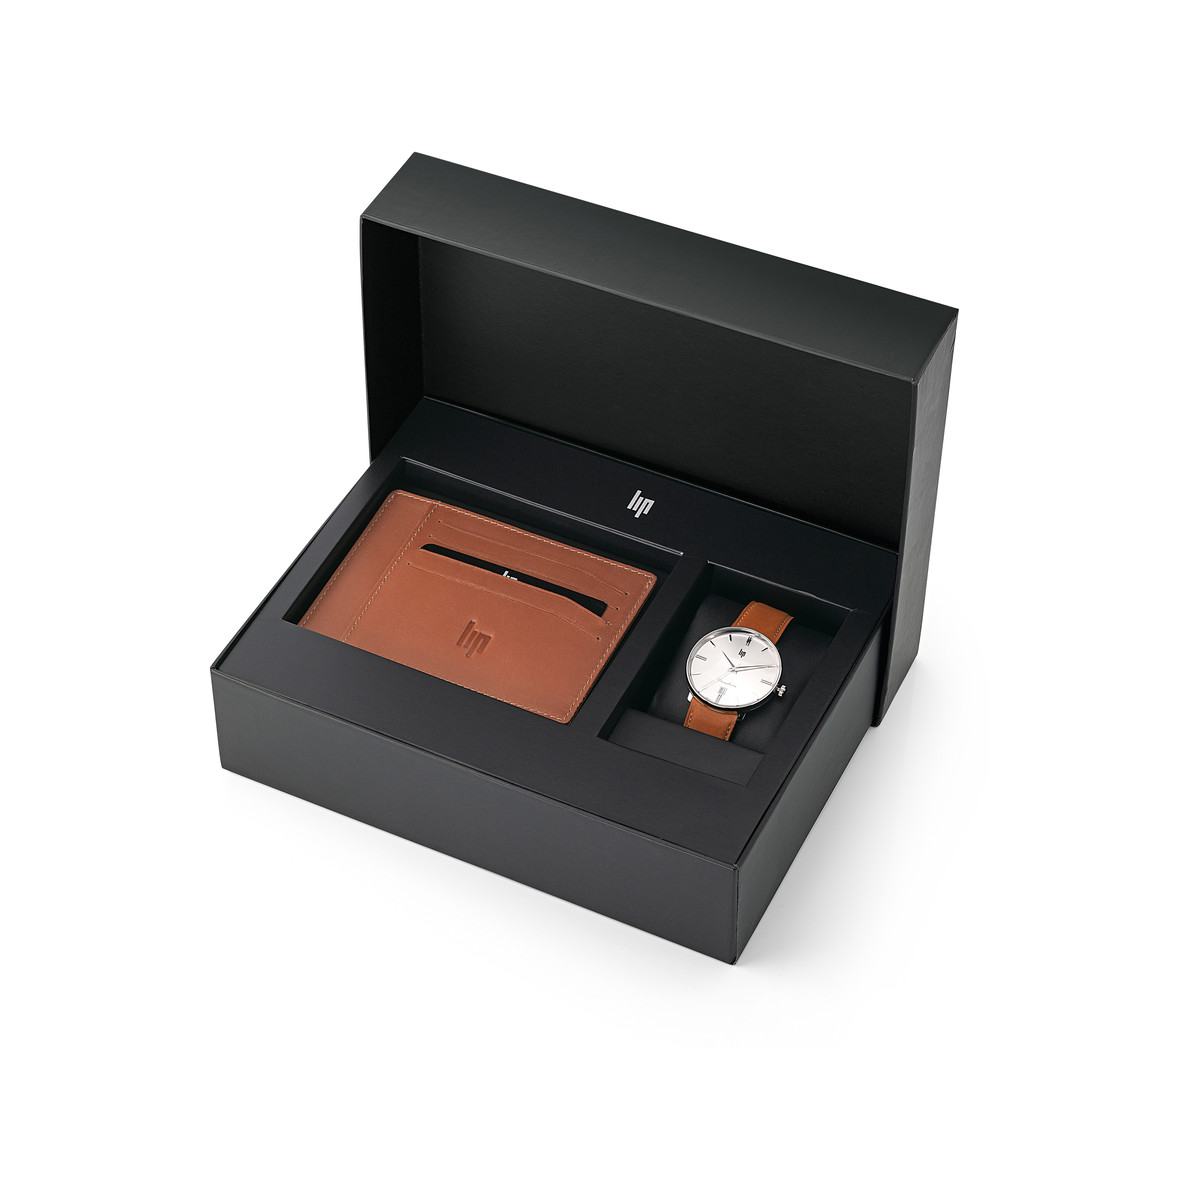 Coffret Lip homme montre porte carte cuir marron